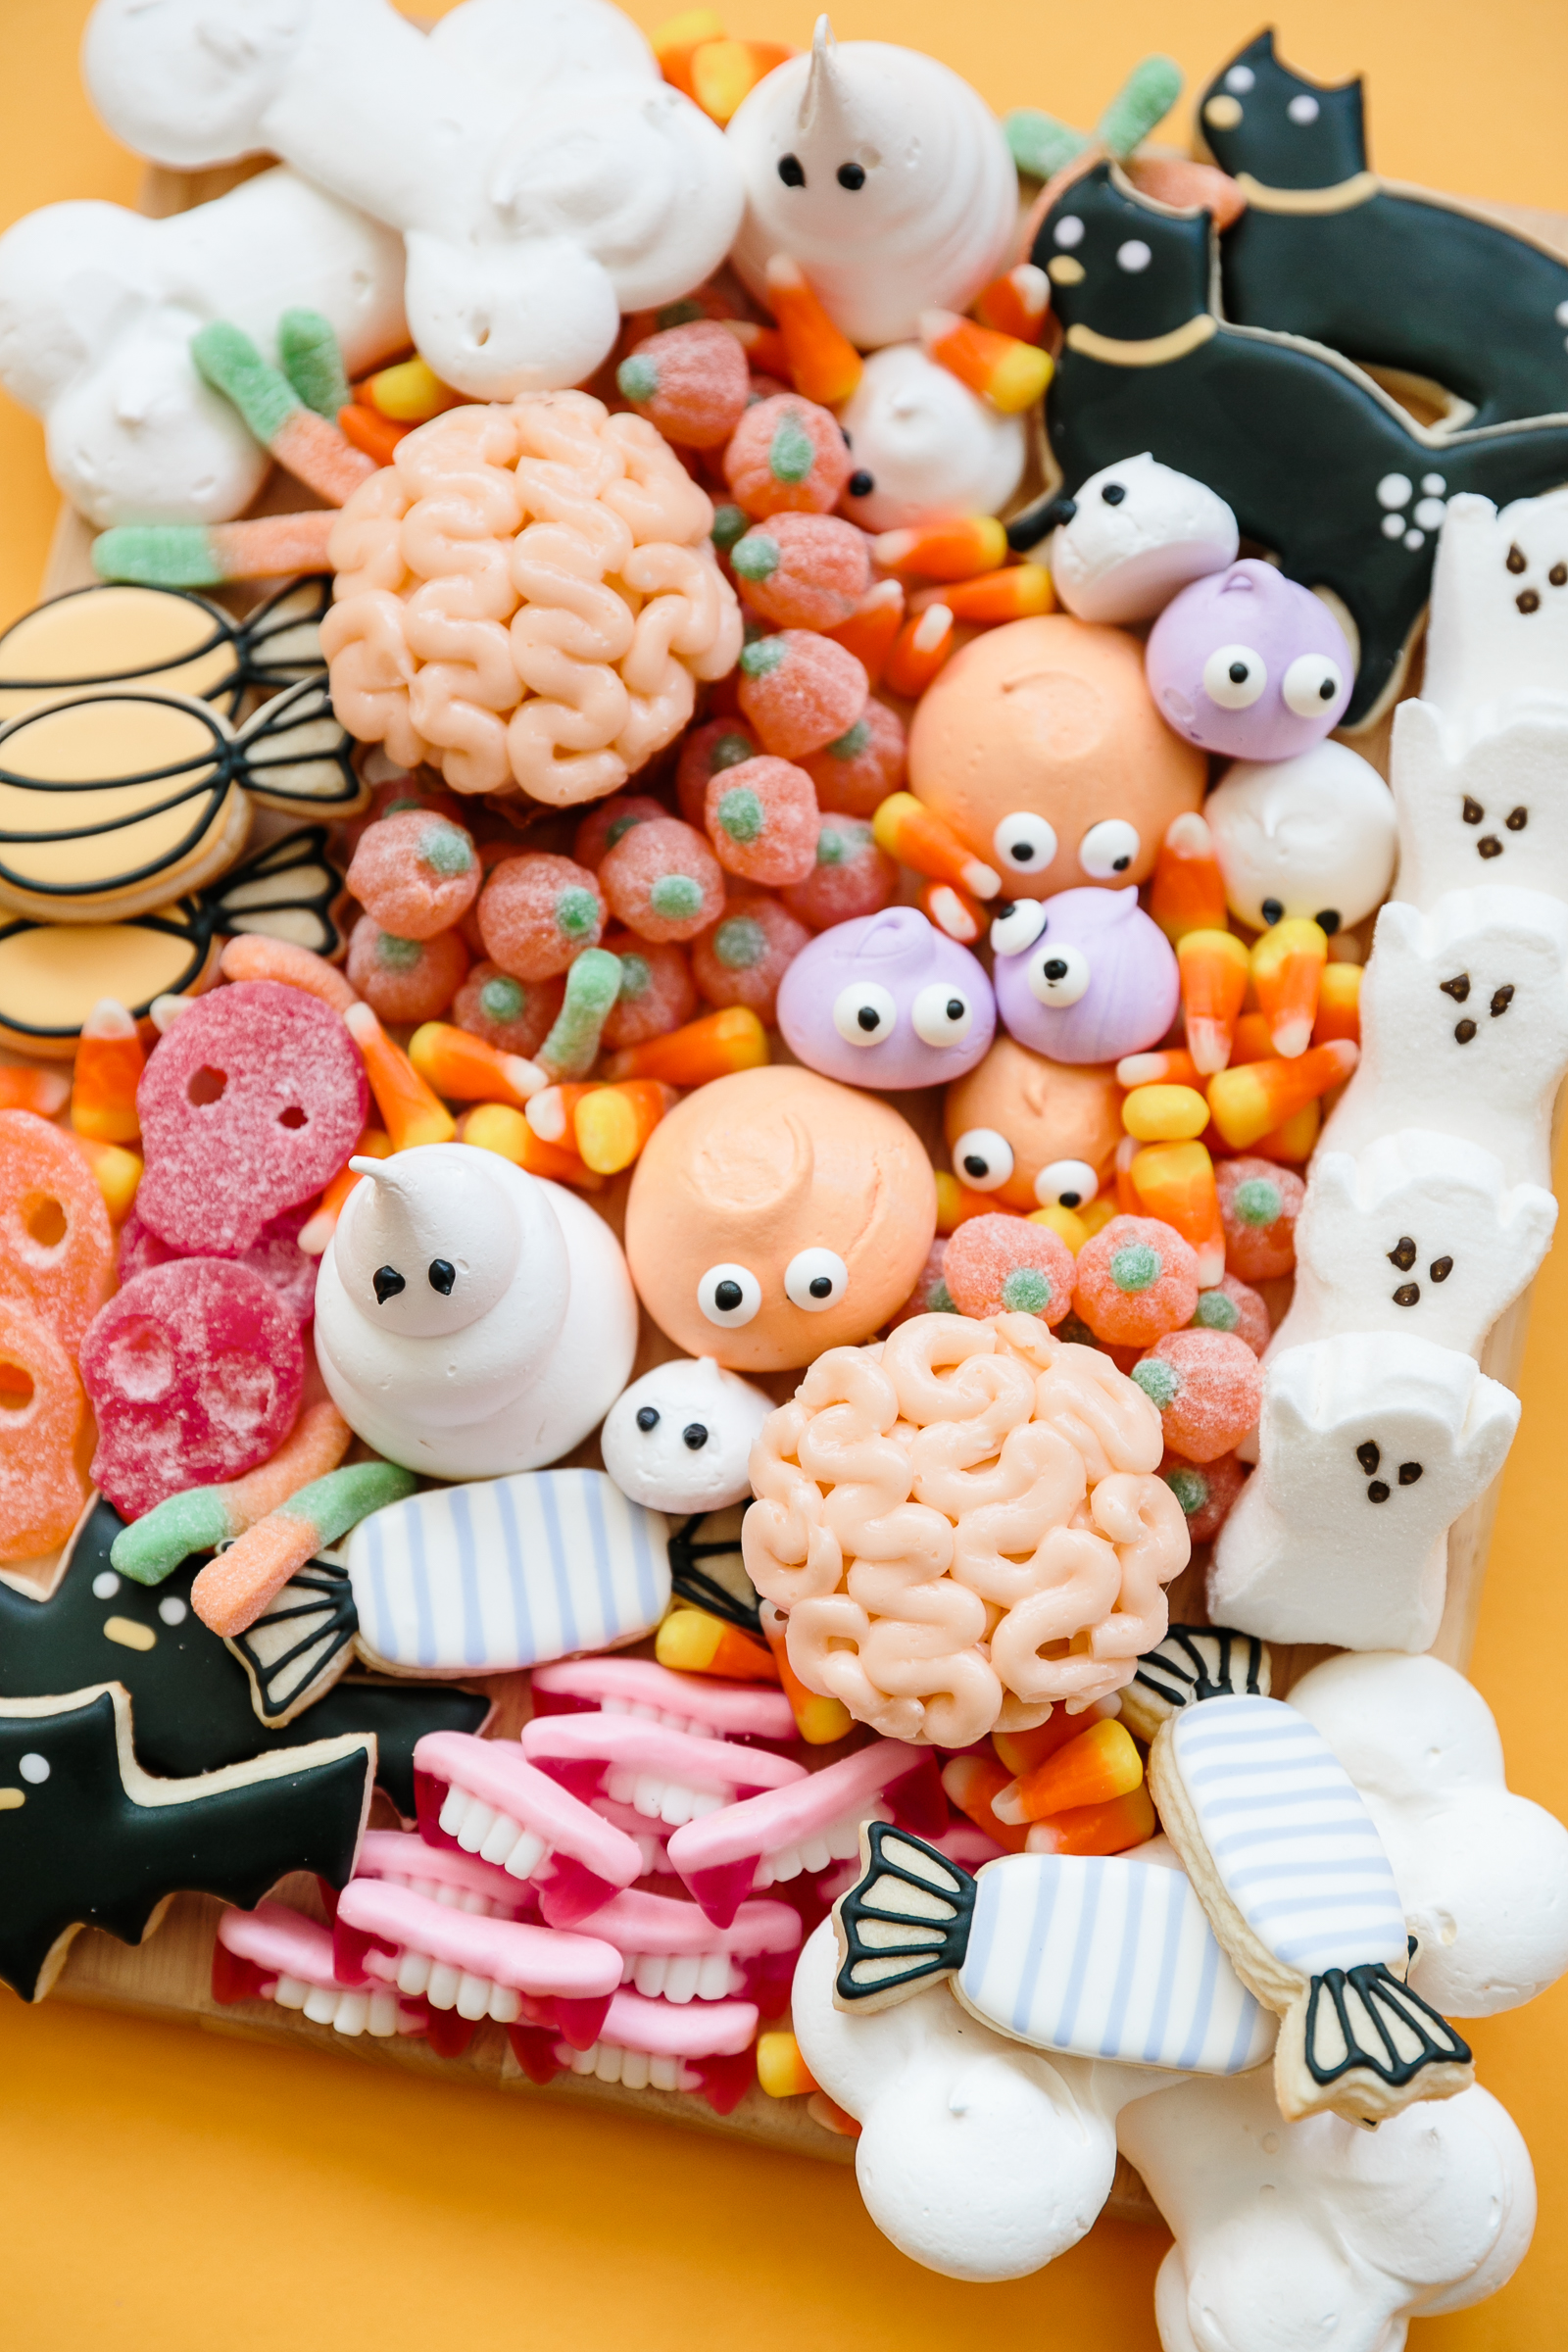 tray of Halloween candy and treats